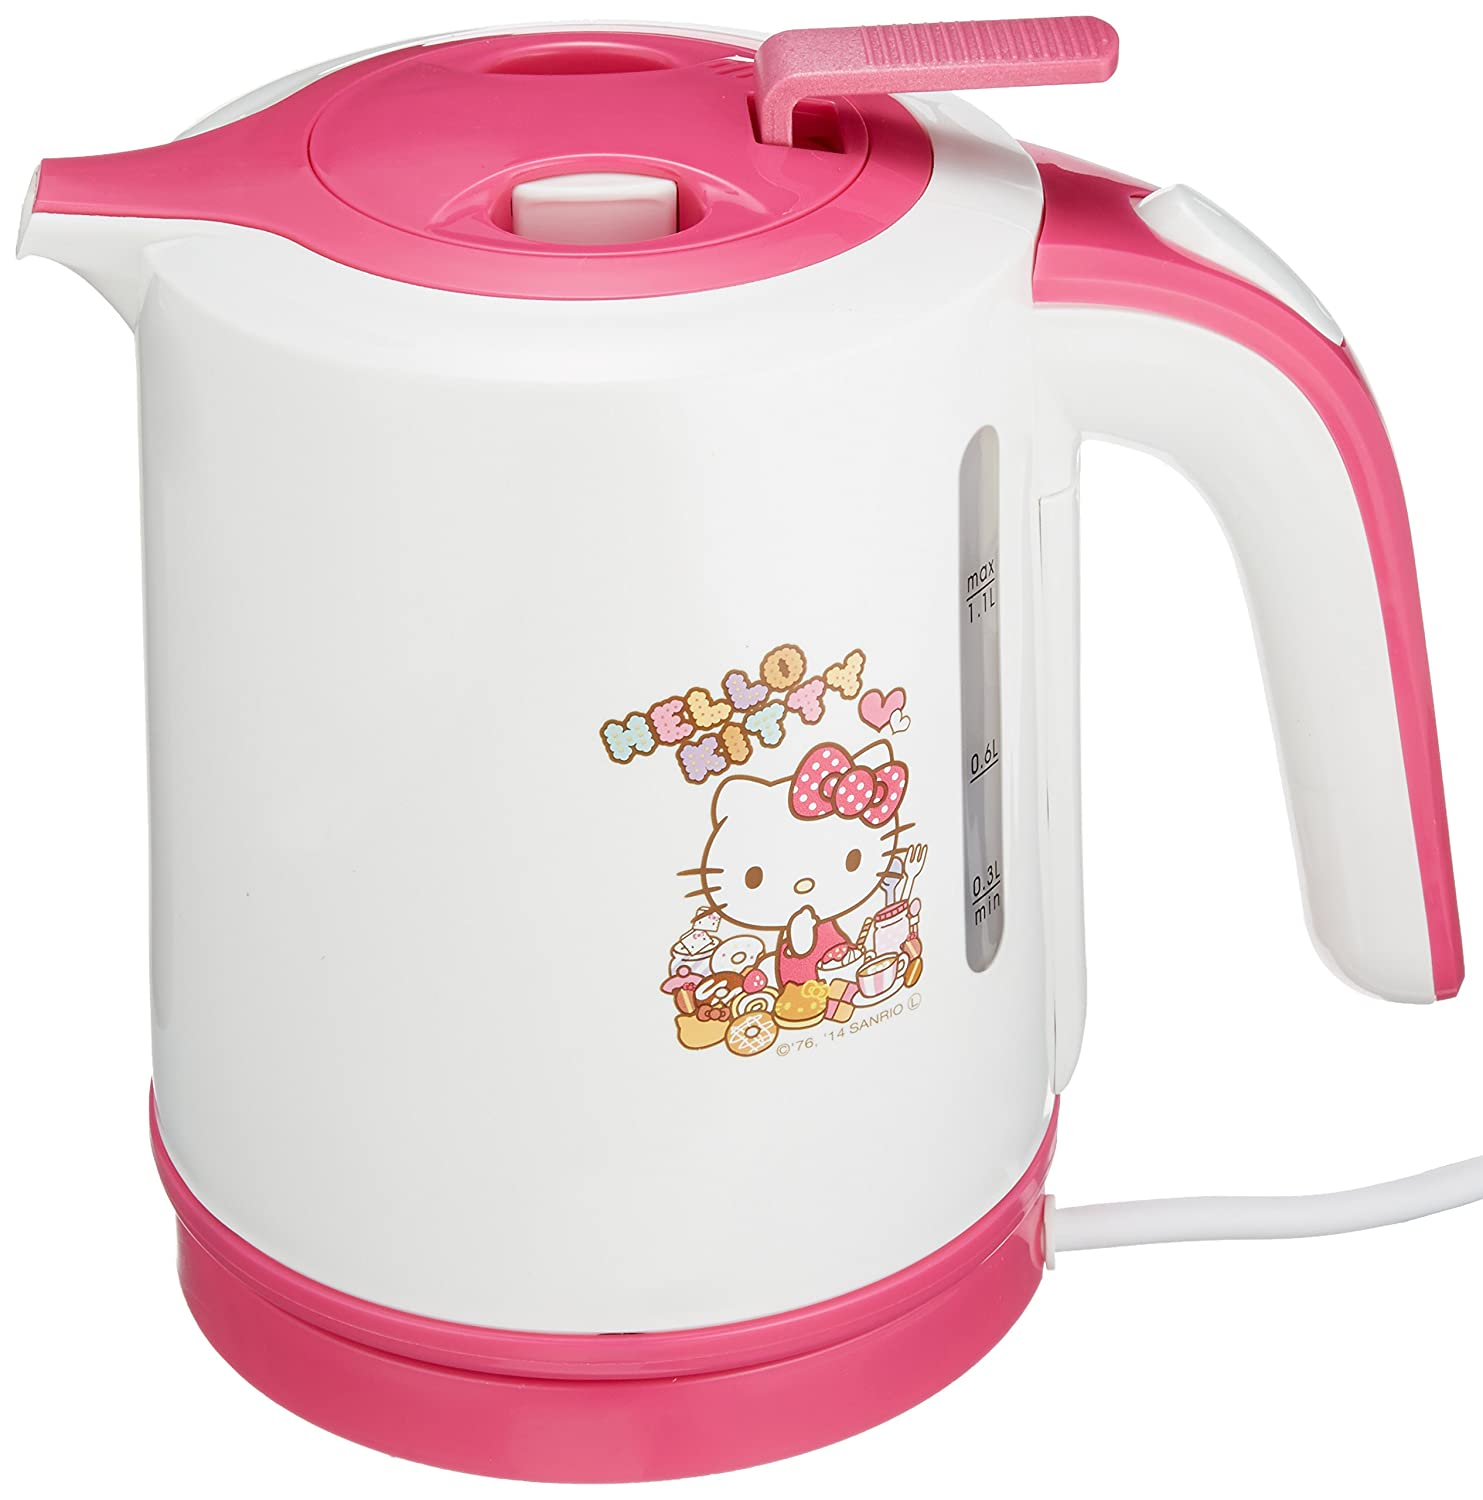 Amazon.com: Hello Kitty electric kettle 1.1L KT-154: Home & Kitchen